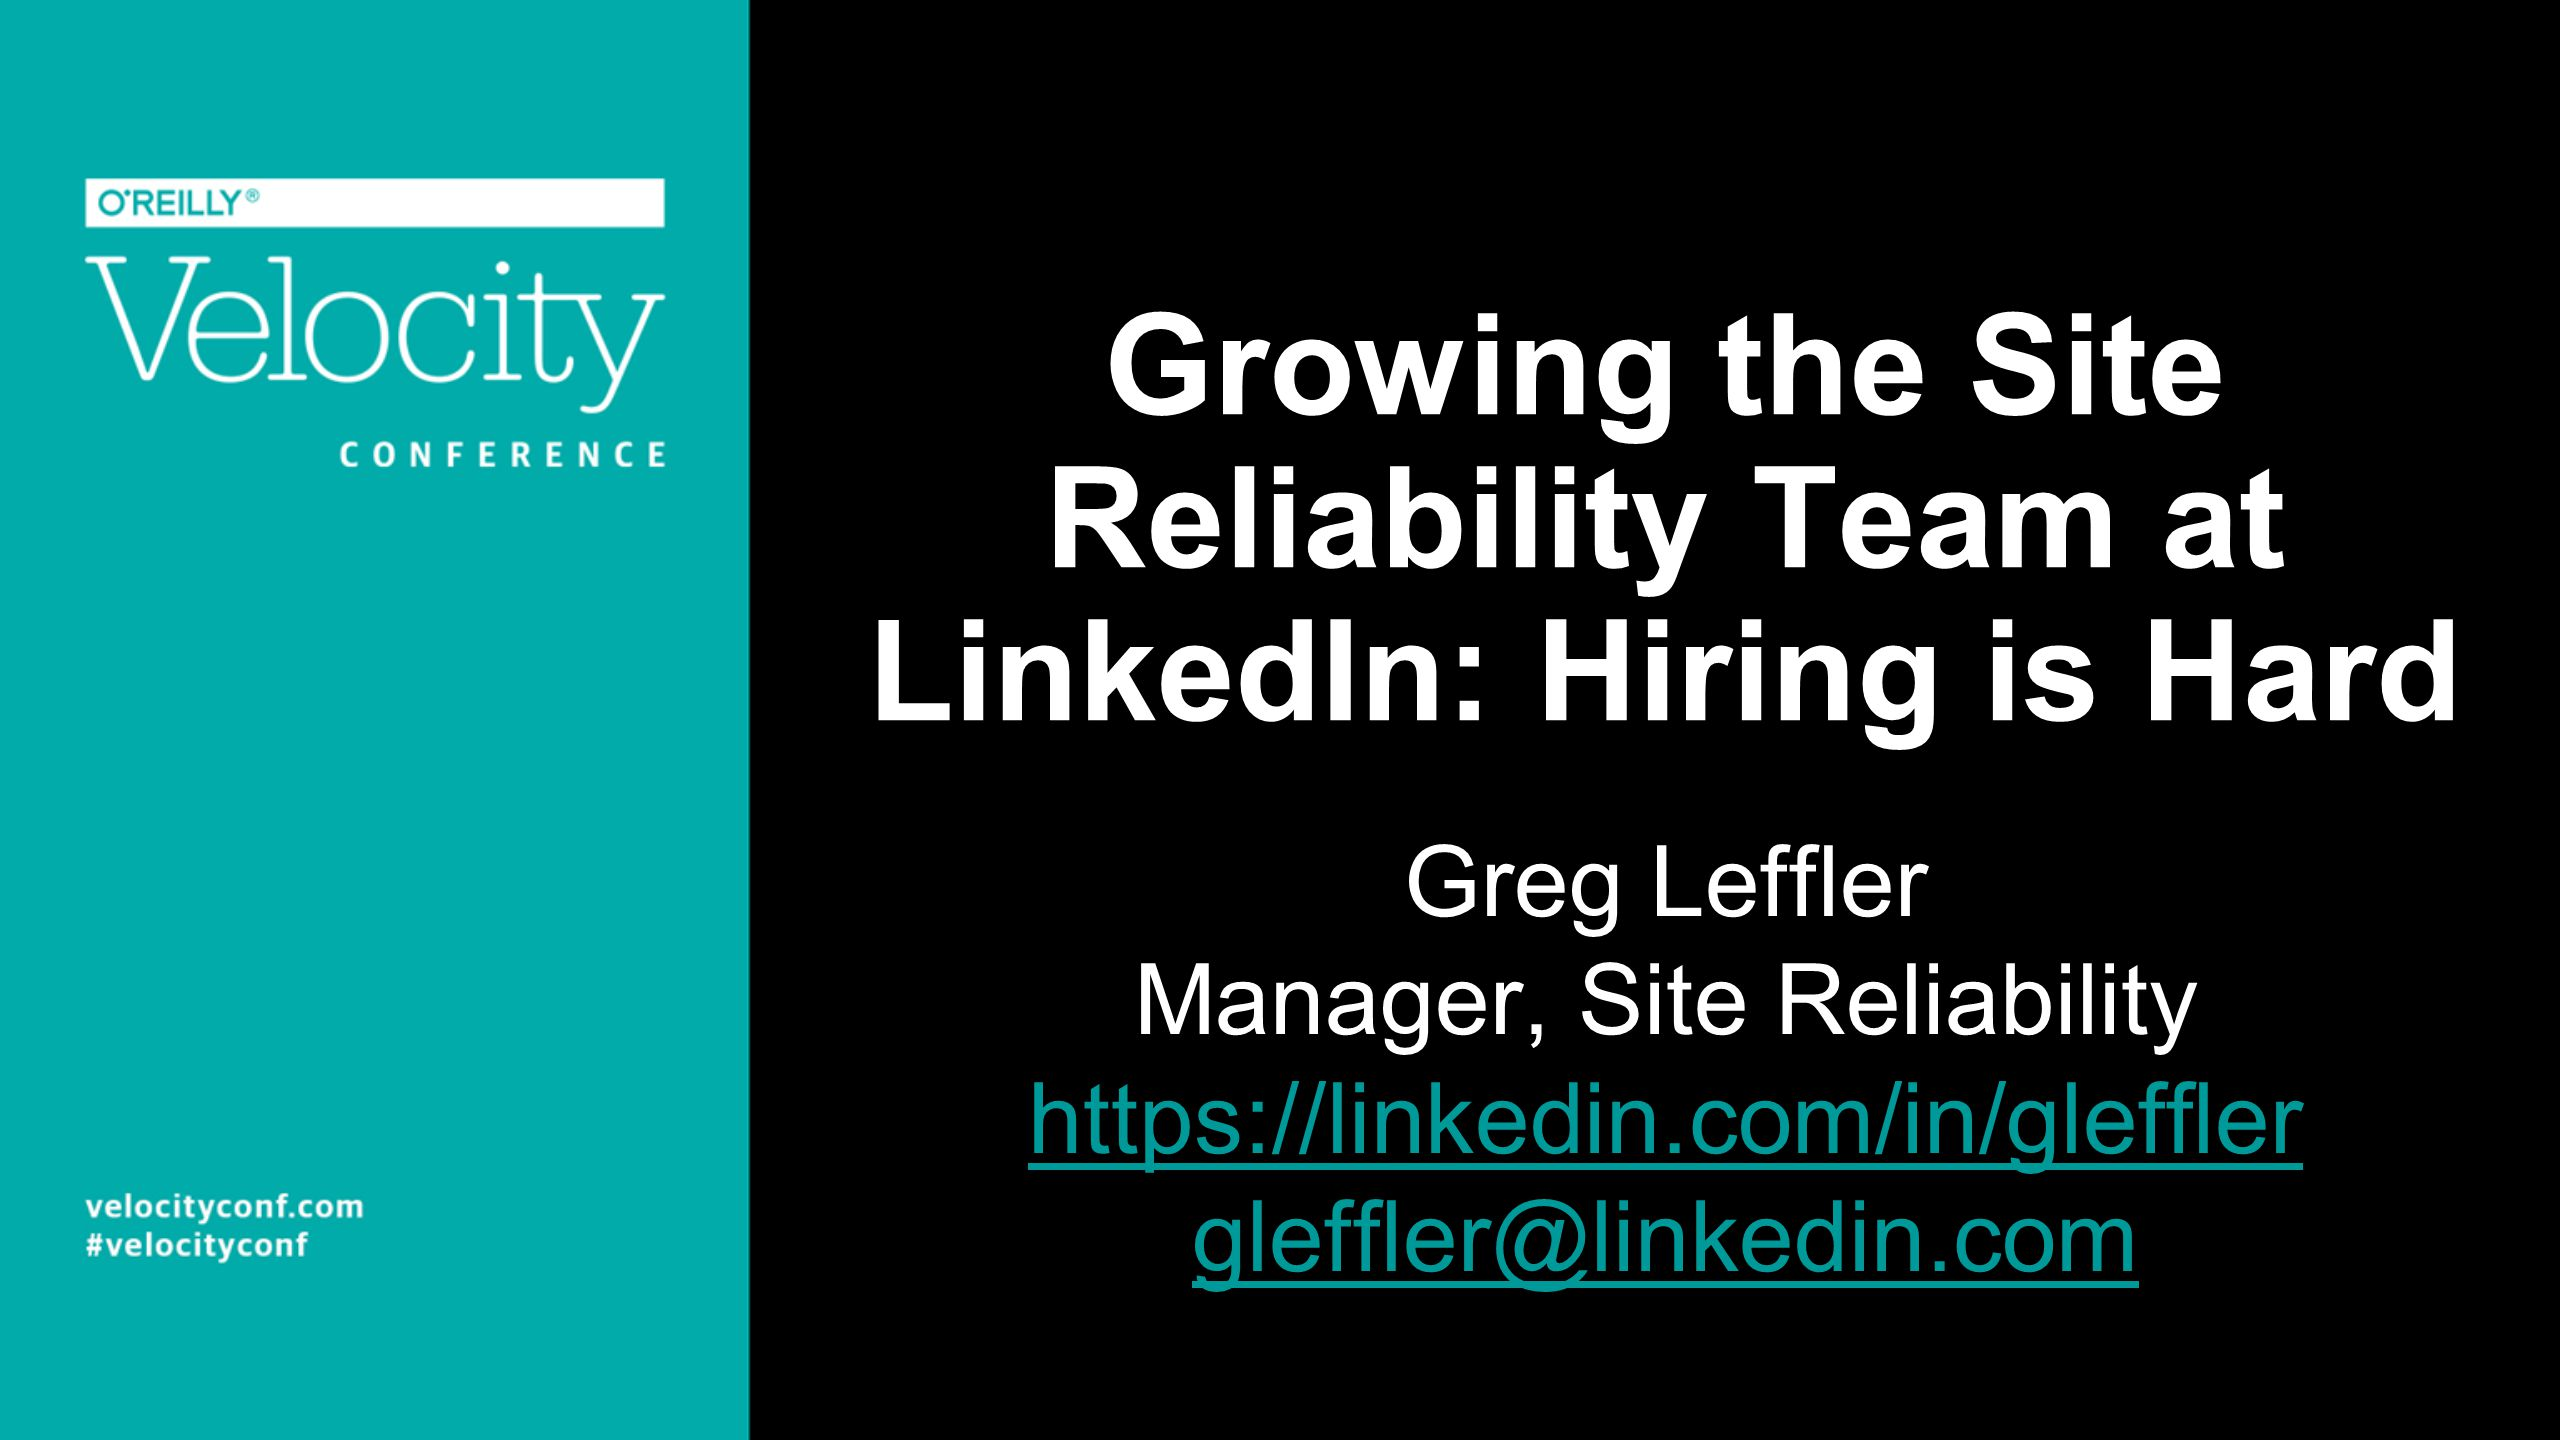 Growing the Site Reliability Team at LinkedIn: Hiring is Hard Greg Leffler Manager, Site Reliability https://linkedin.com/in/gleffler gleffler@linkedi